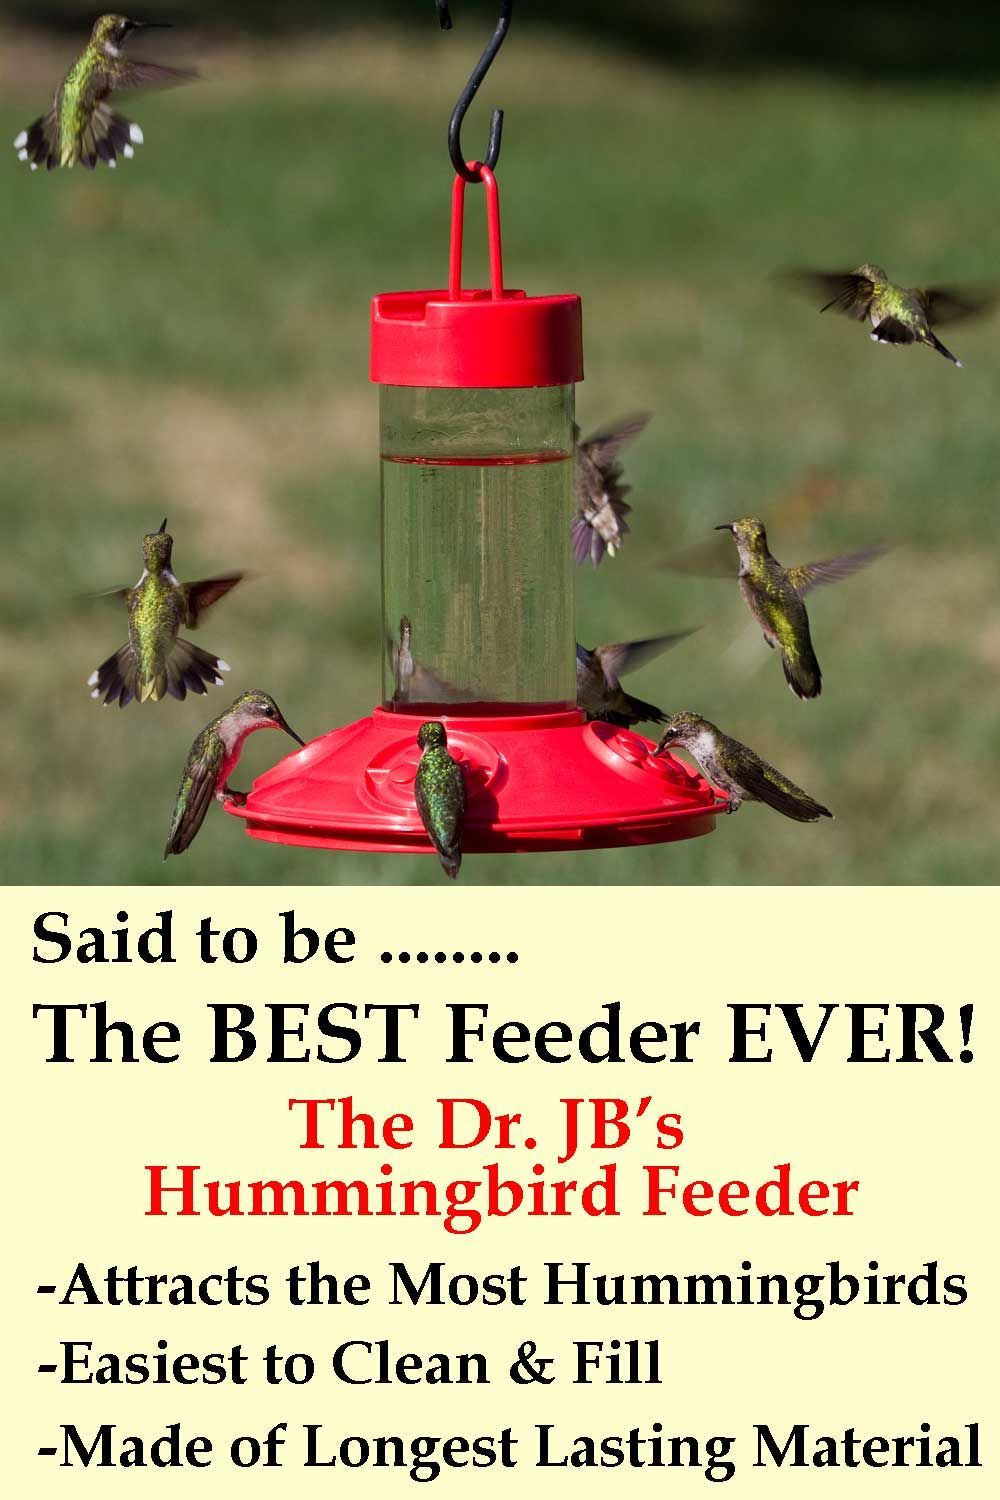 How To Make Perches For A Hummingbird Feeder Humming Bird Feeders Hummingbird Perch Diy Hummingbird Perch